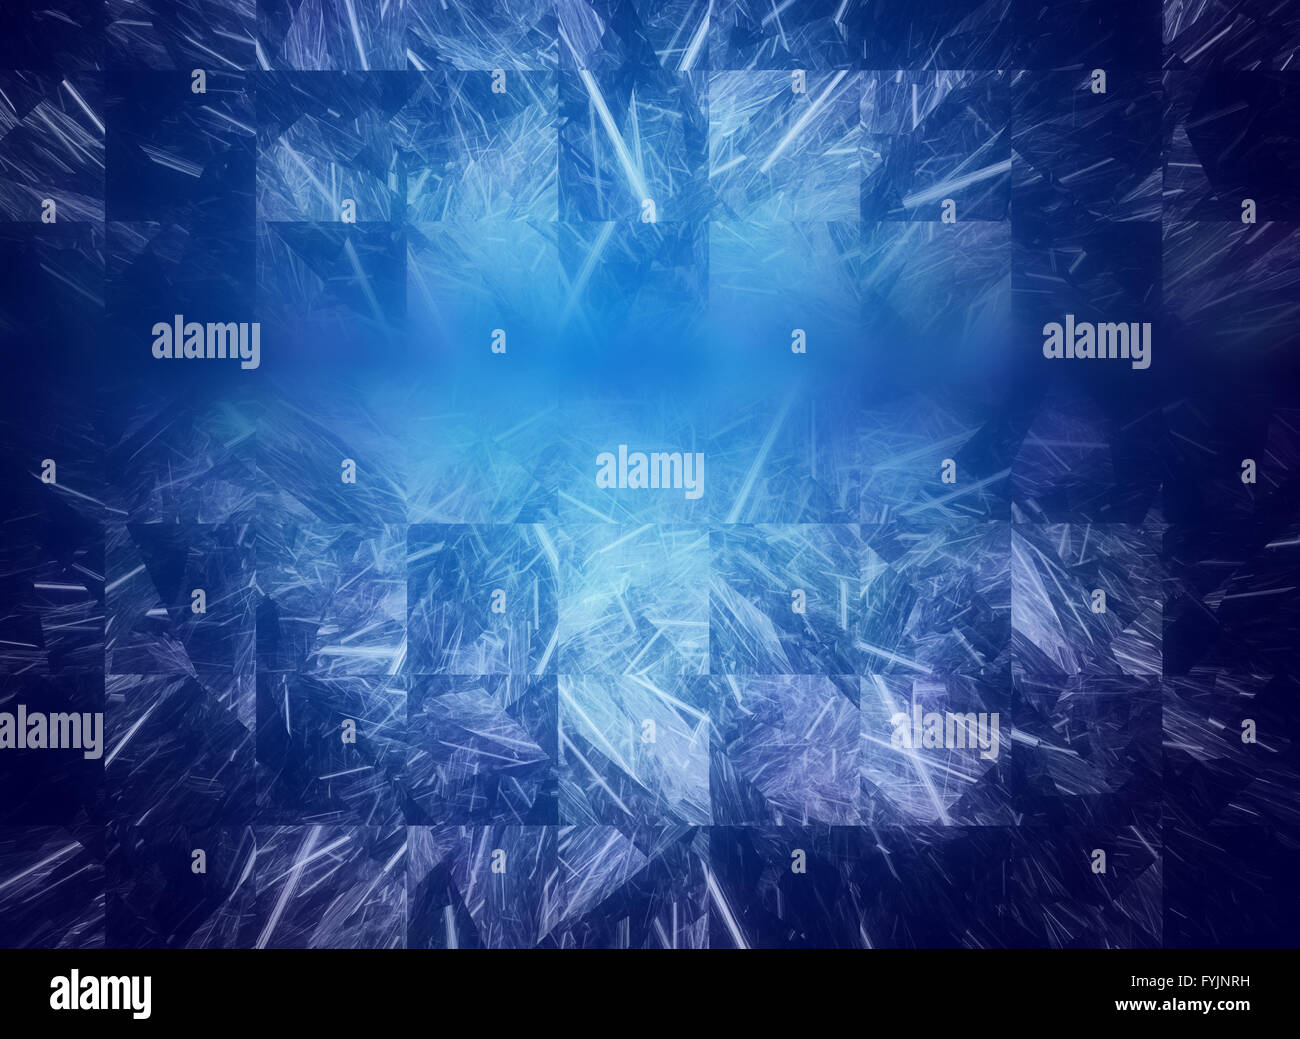 Abstract fractal texture, wisps and lights, Background design of dreamy forms and colors on the subject of dream, - Stock Image